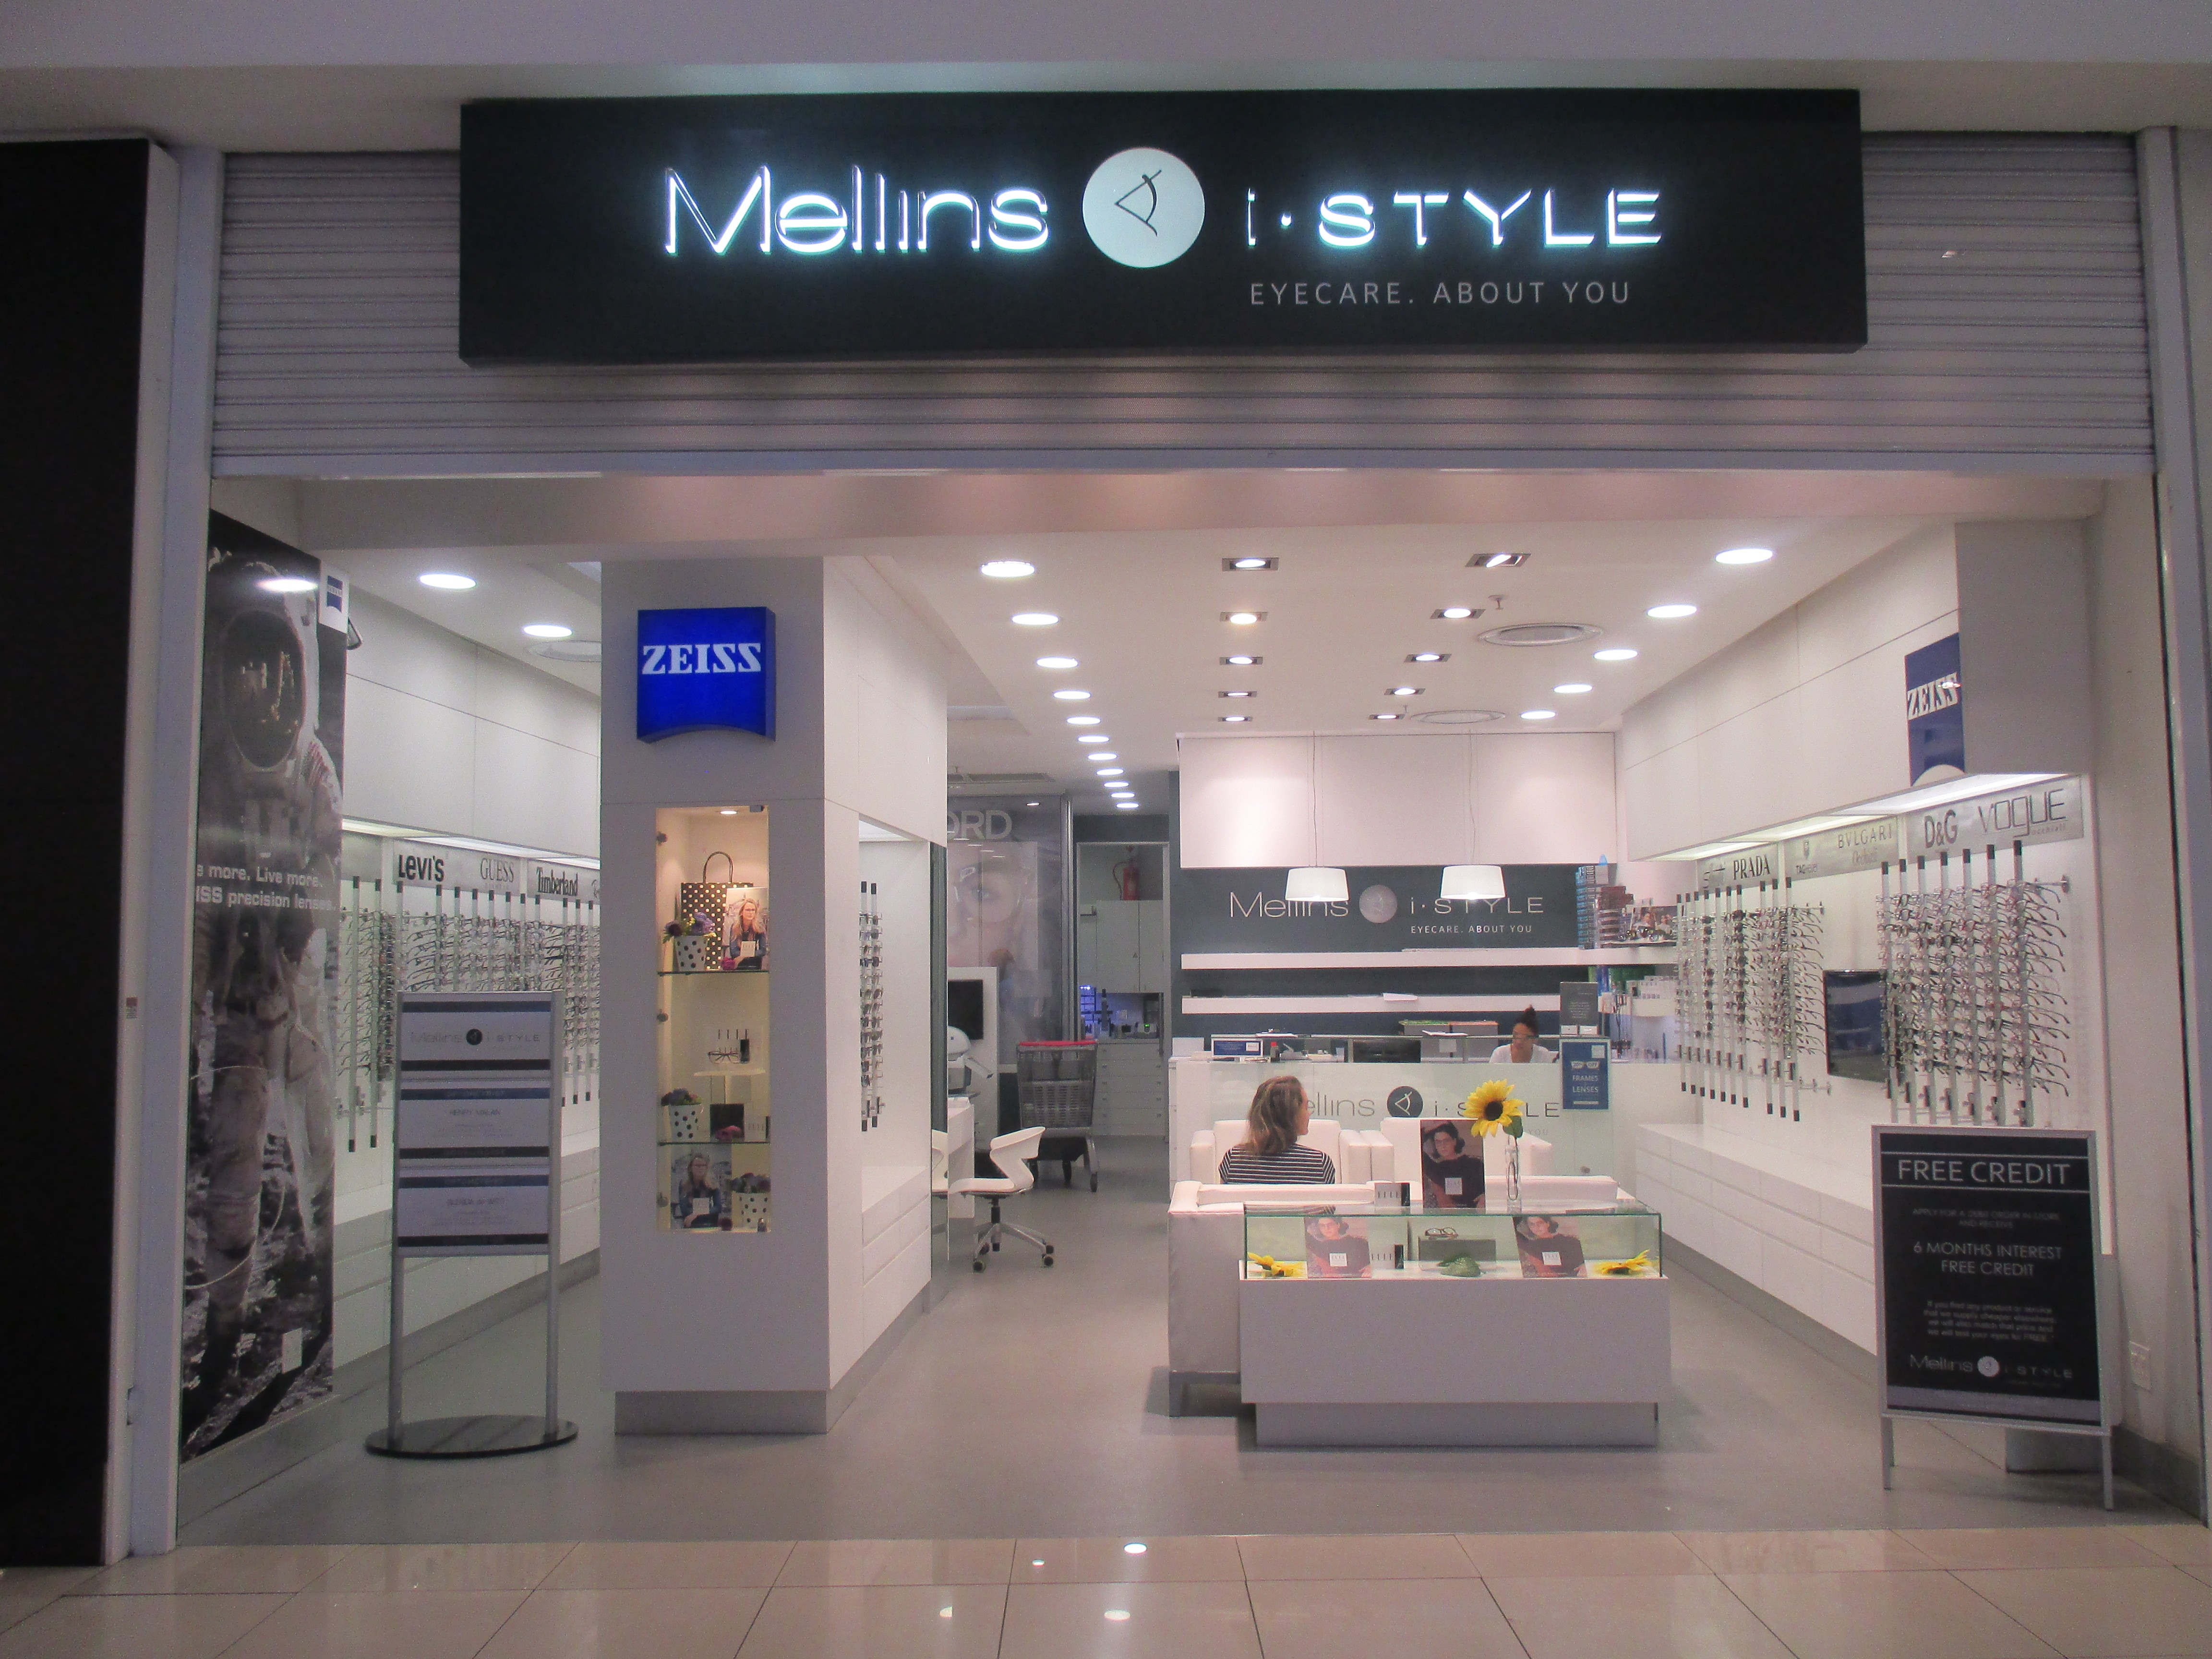 Mellins iStyle